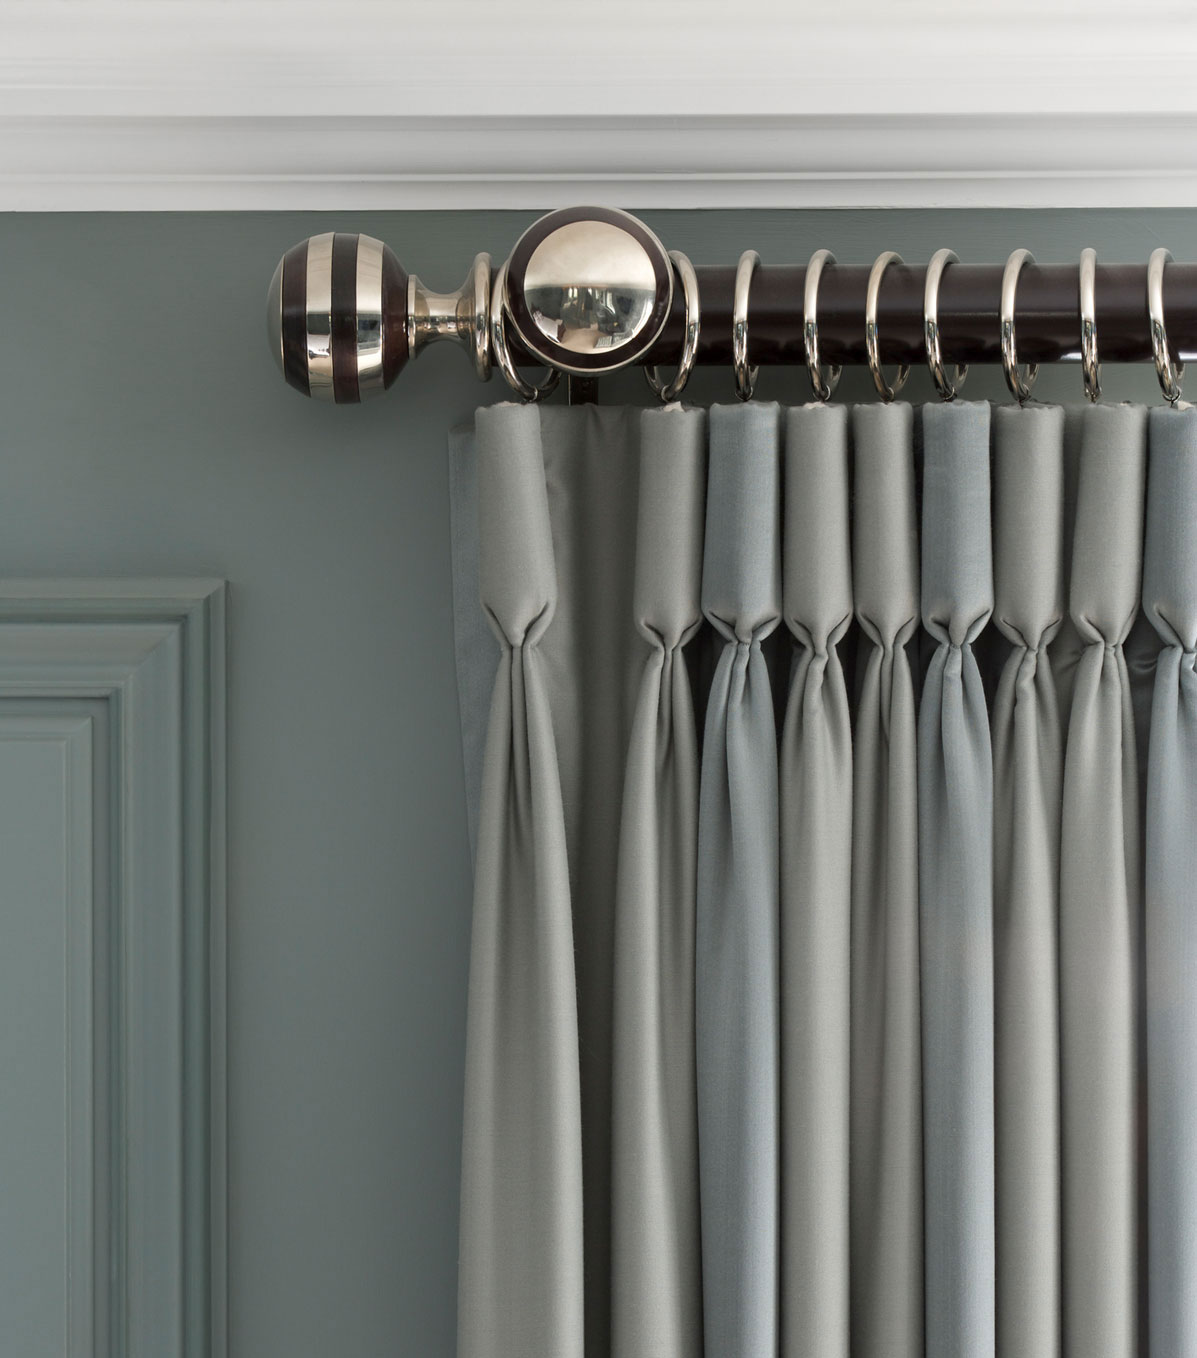 What Type of Curtain Rod Should I Use?